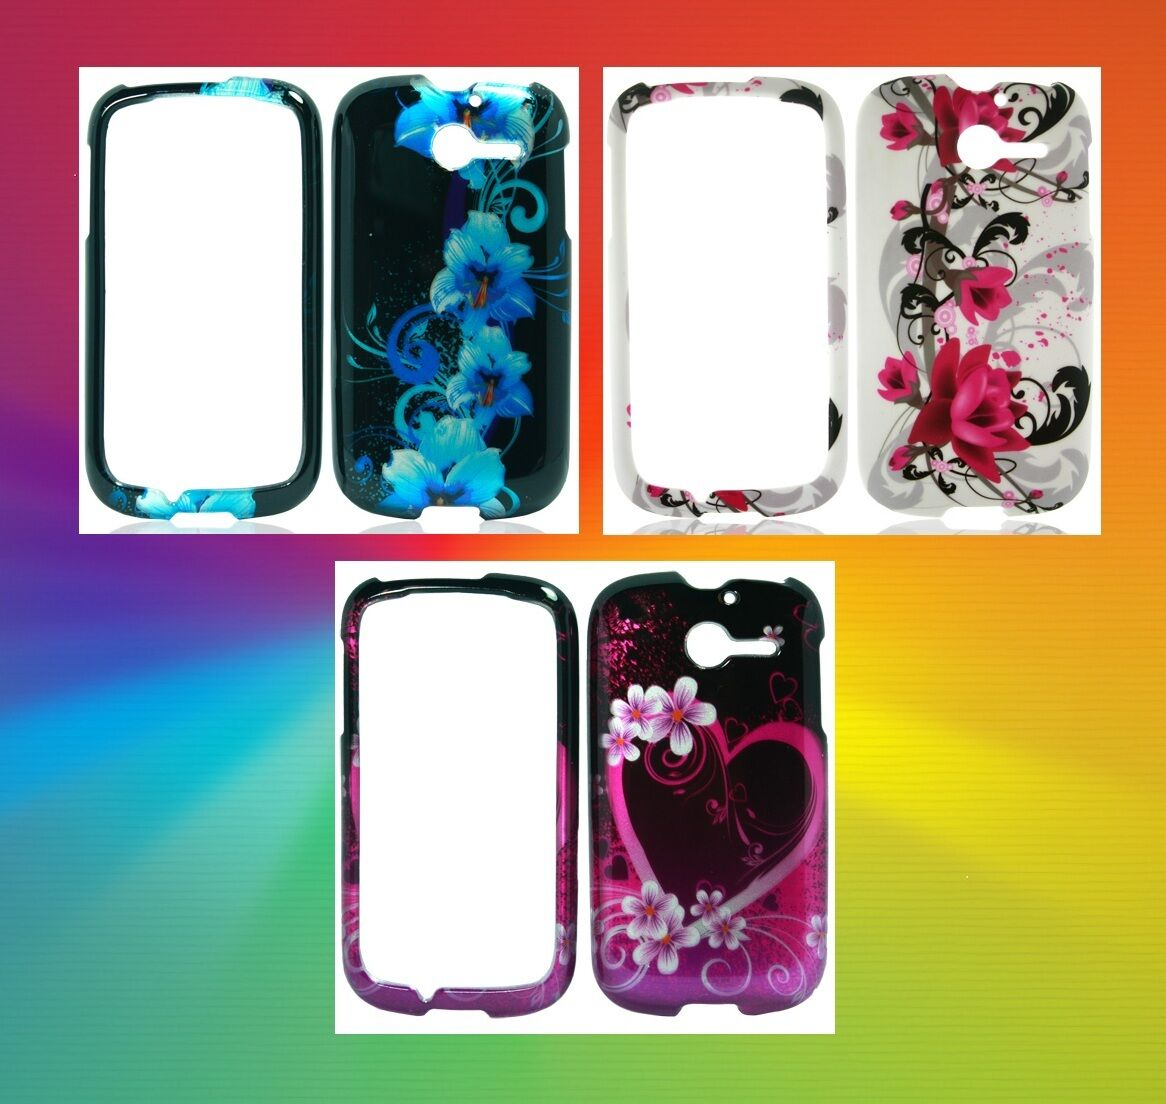 Hard Cases Snap on Phone Cover For Straight Talk Huawei Ascend Y